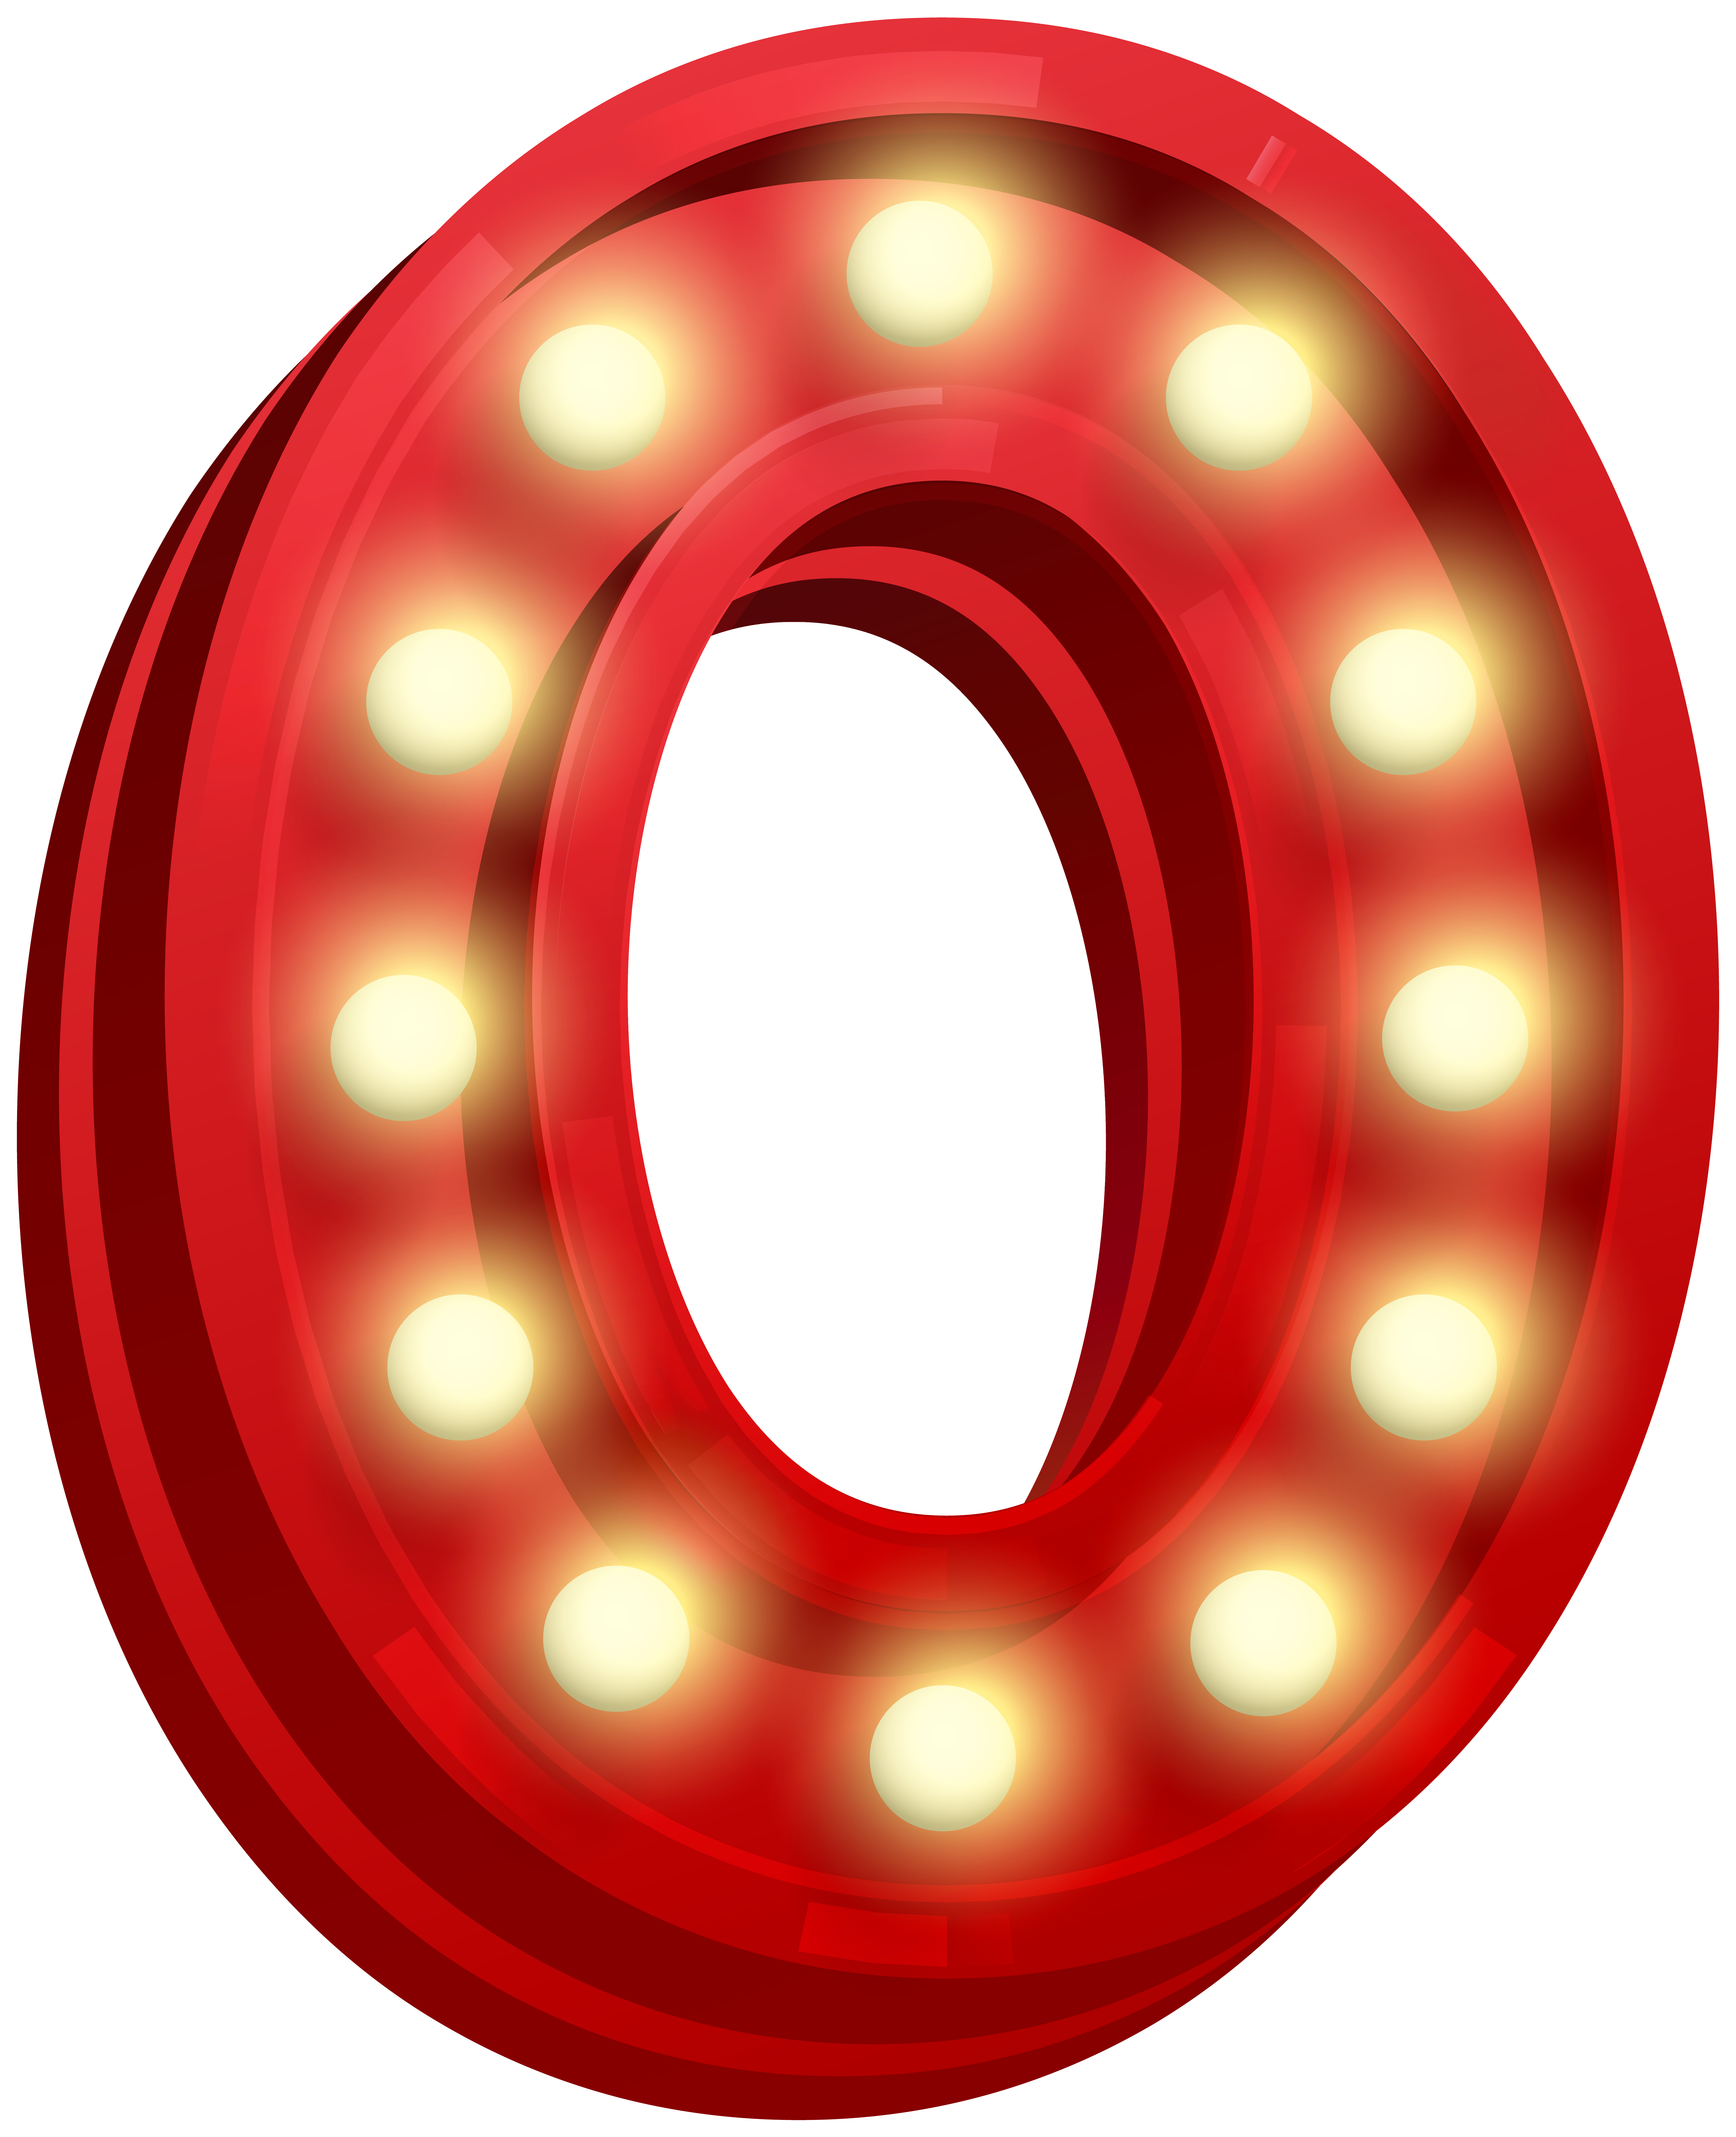 Number Zero Glowing PNG Clip Art Image.